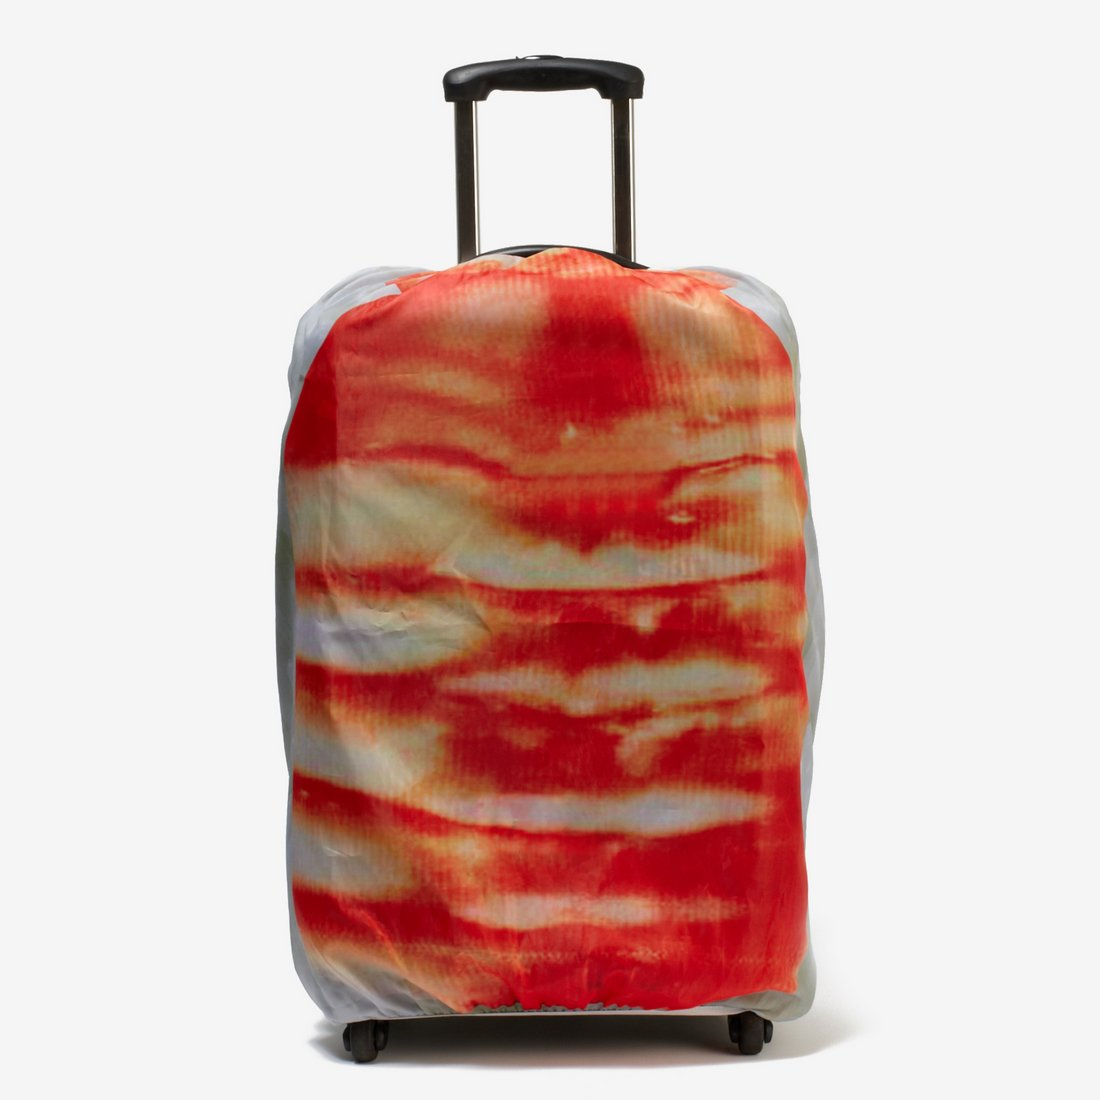 omiseparco-sushi-suitcase-cover (8)